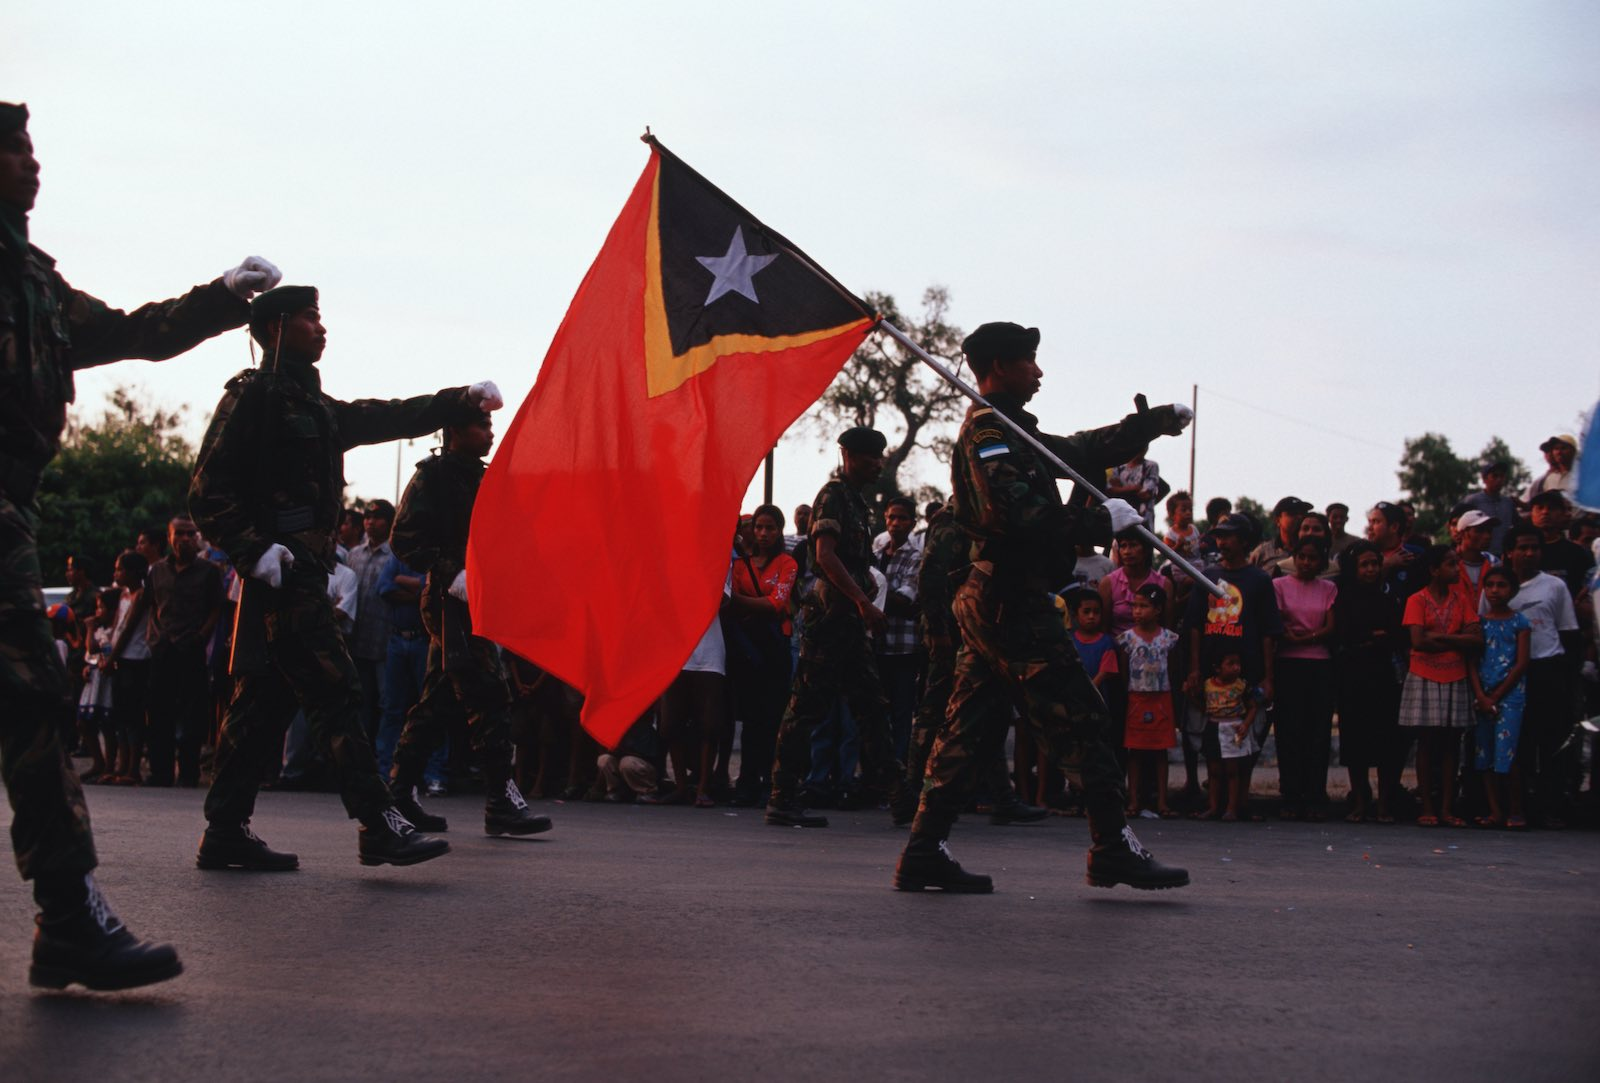 A parade on the anniversary of the founding of Falintil (Armed Forces of National Liberation of East Timor), Dili, 1 August 2002 (Jerry Redfern/LightRocket via Getty Images)